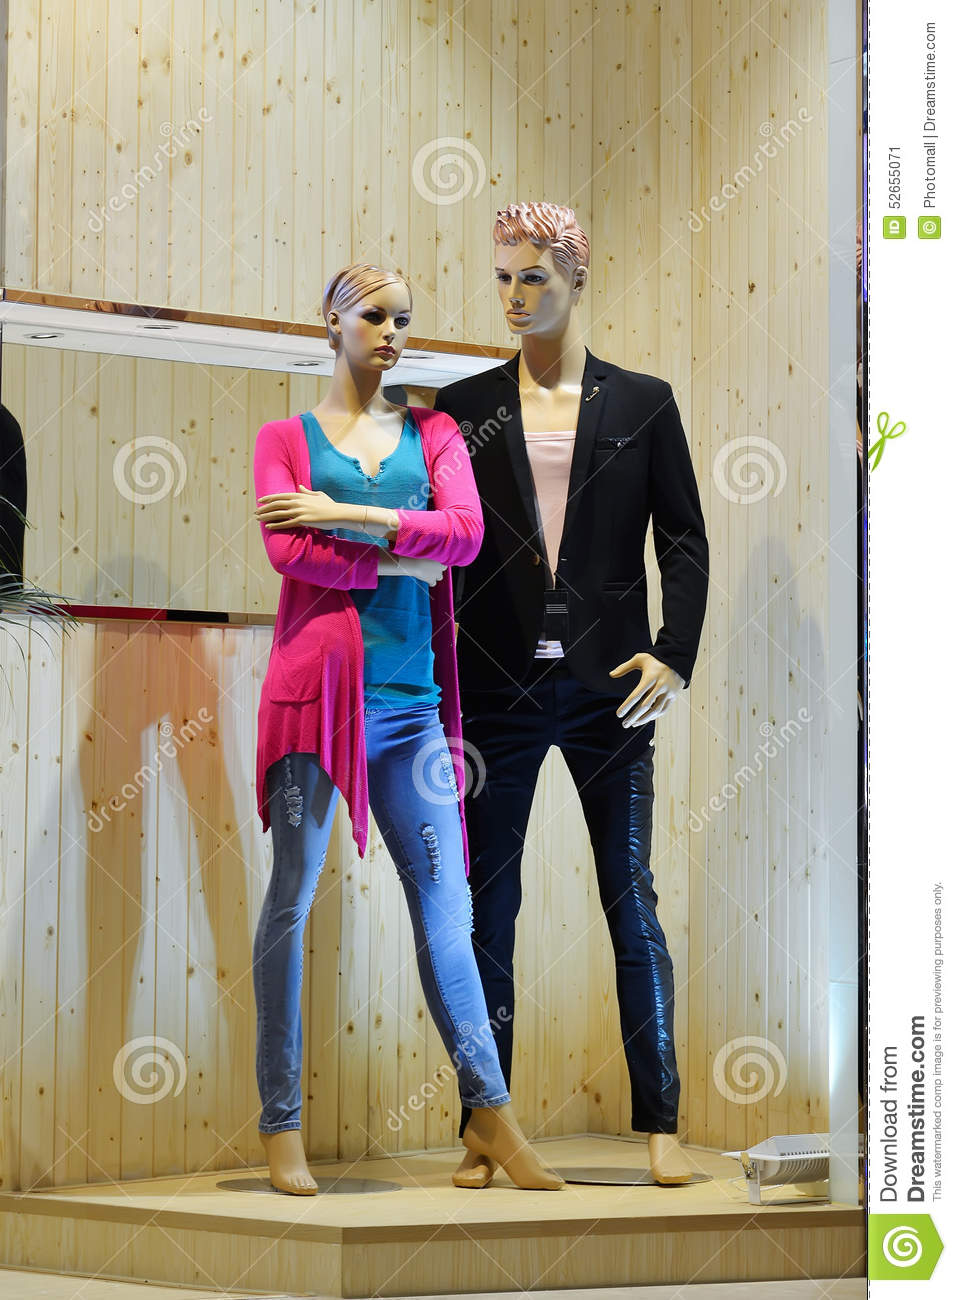 man and woman mannequin in fashion shop window stock photo